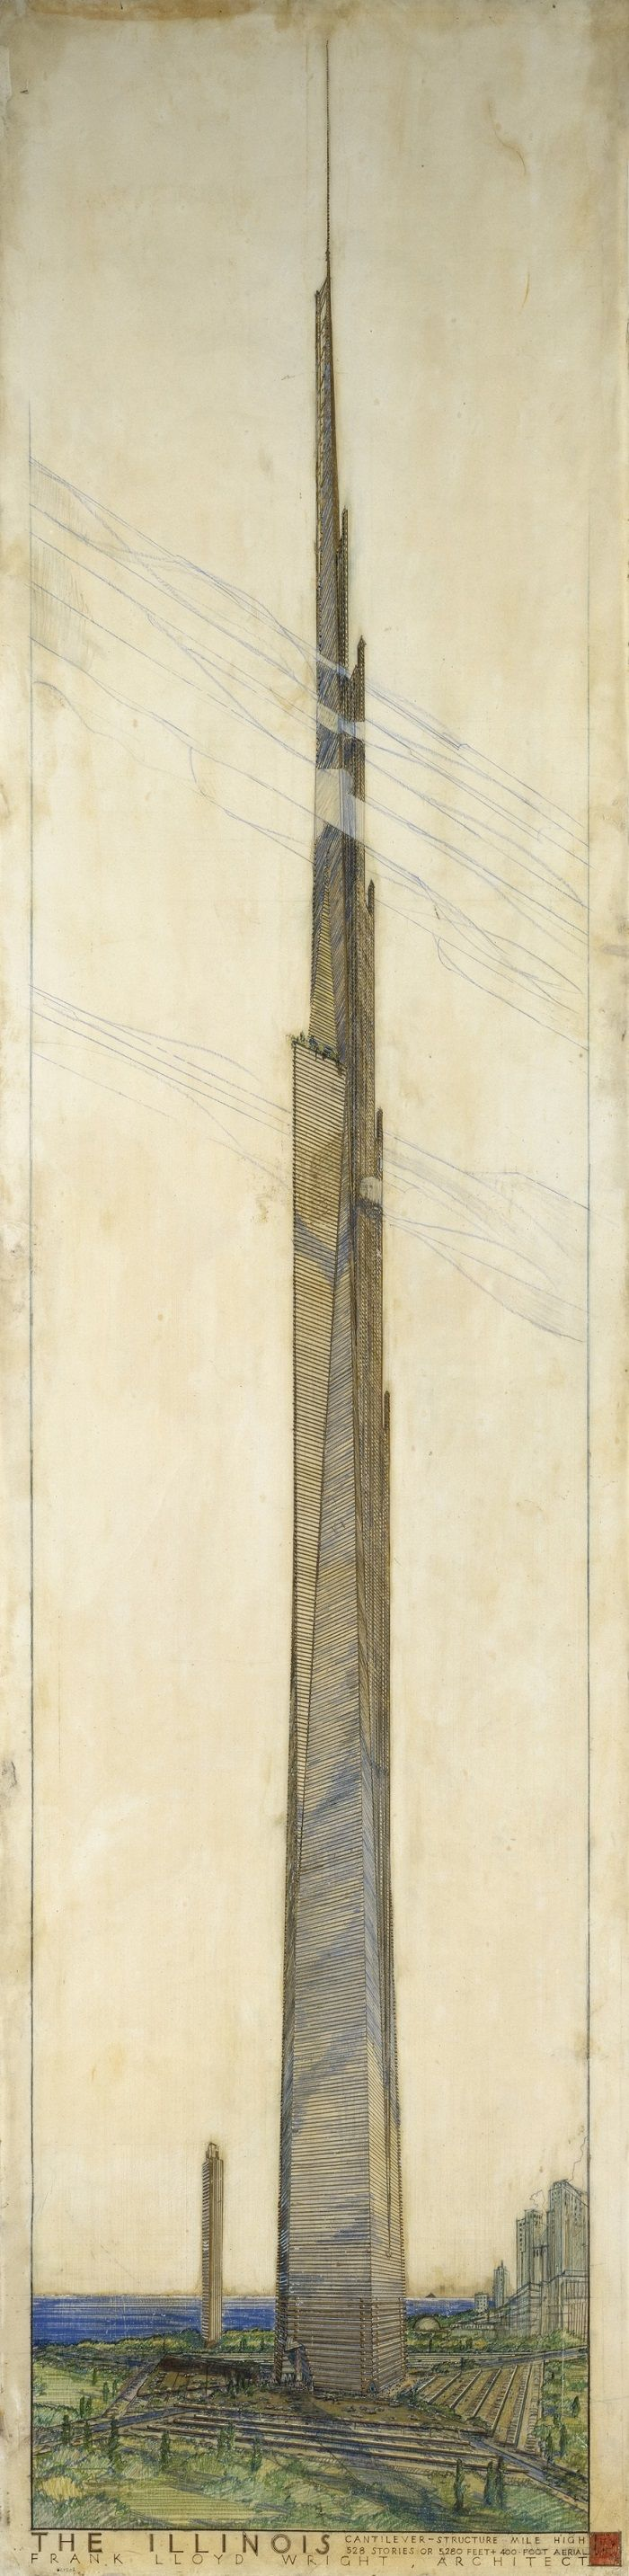 Frank Lloyd Wright's sketch for the Mile High Illinois Skyscraper